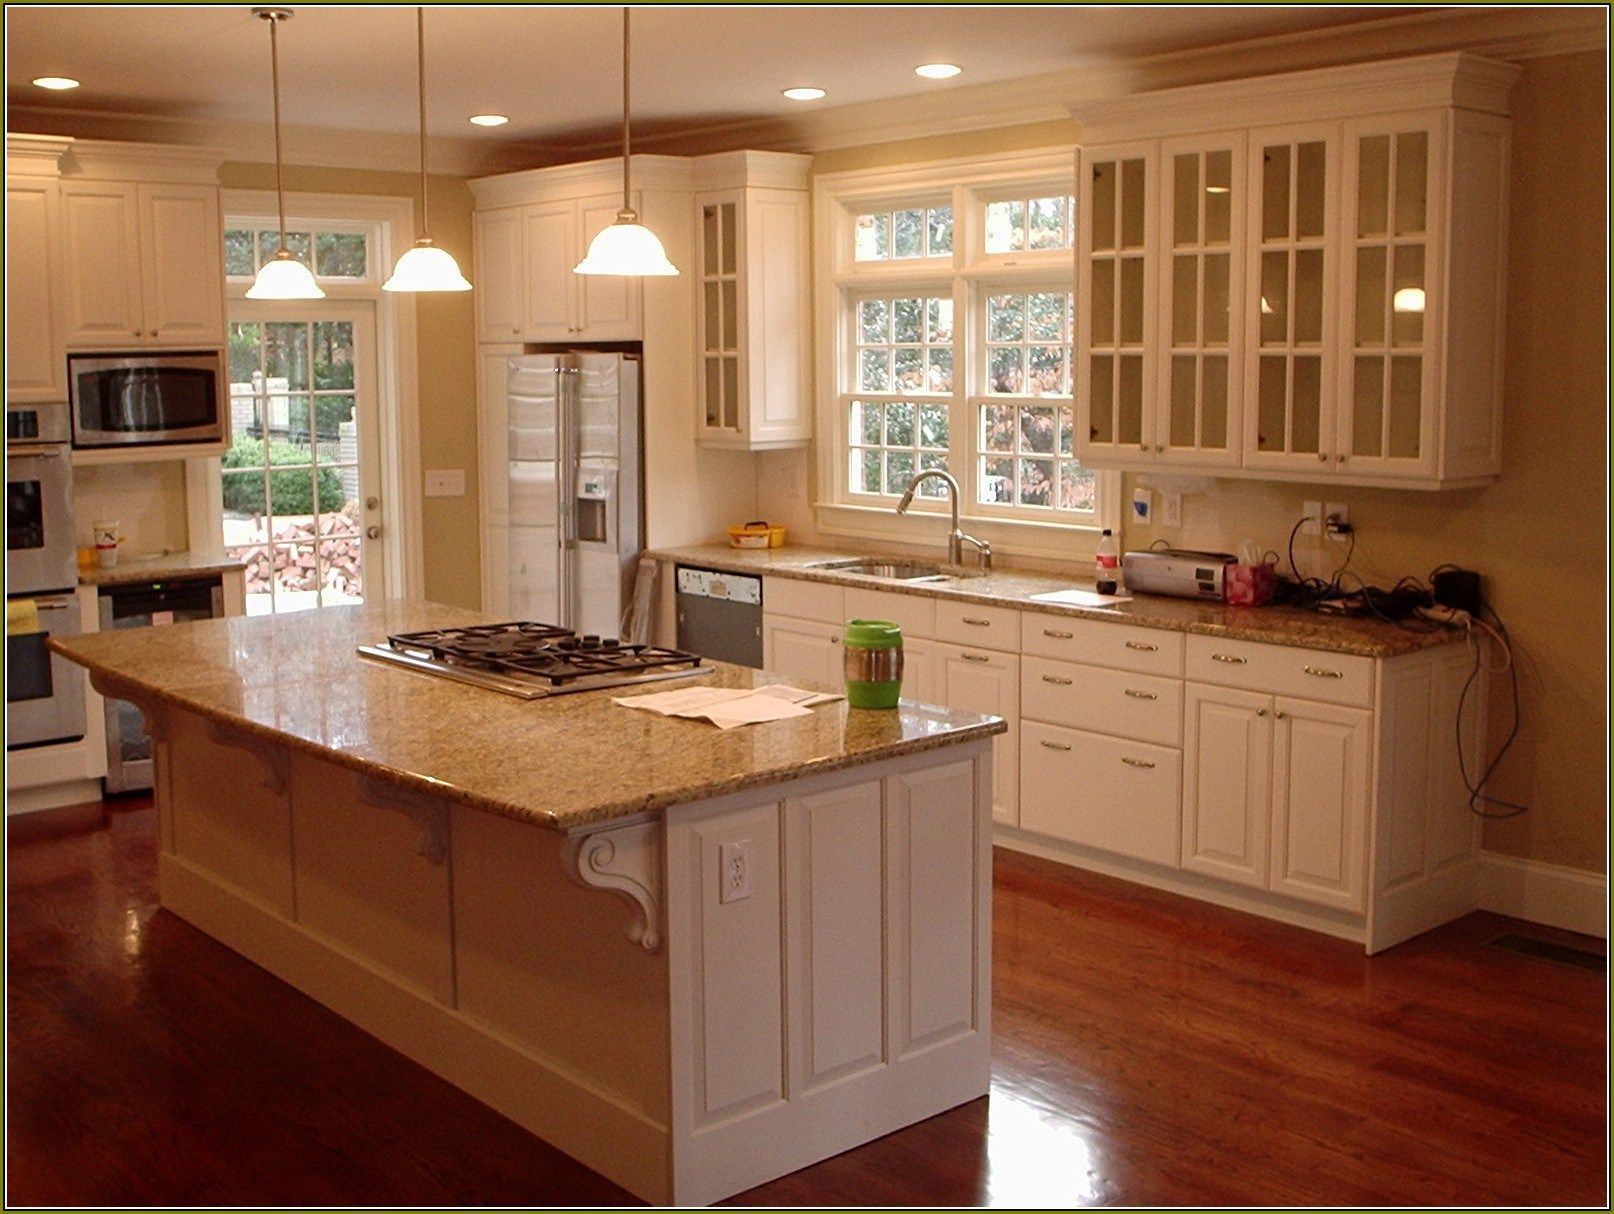 Home Depot Kitchen Cabinets Home Design Ideas Refacing Refinishing Glamorous Home Depot Kitchen Countertops Design Inspiration